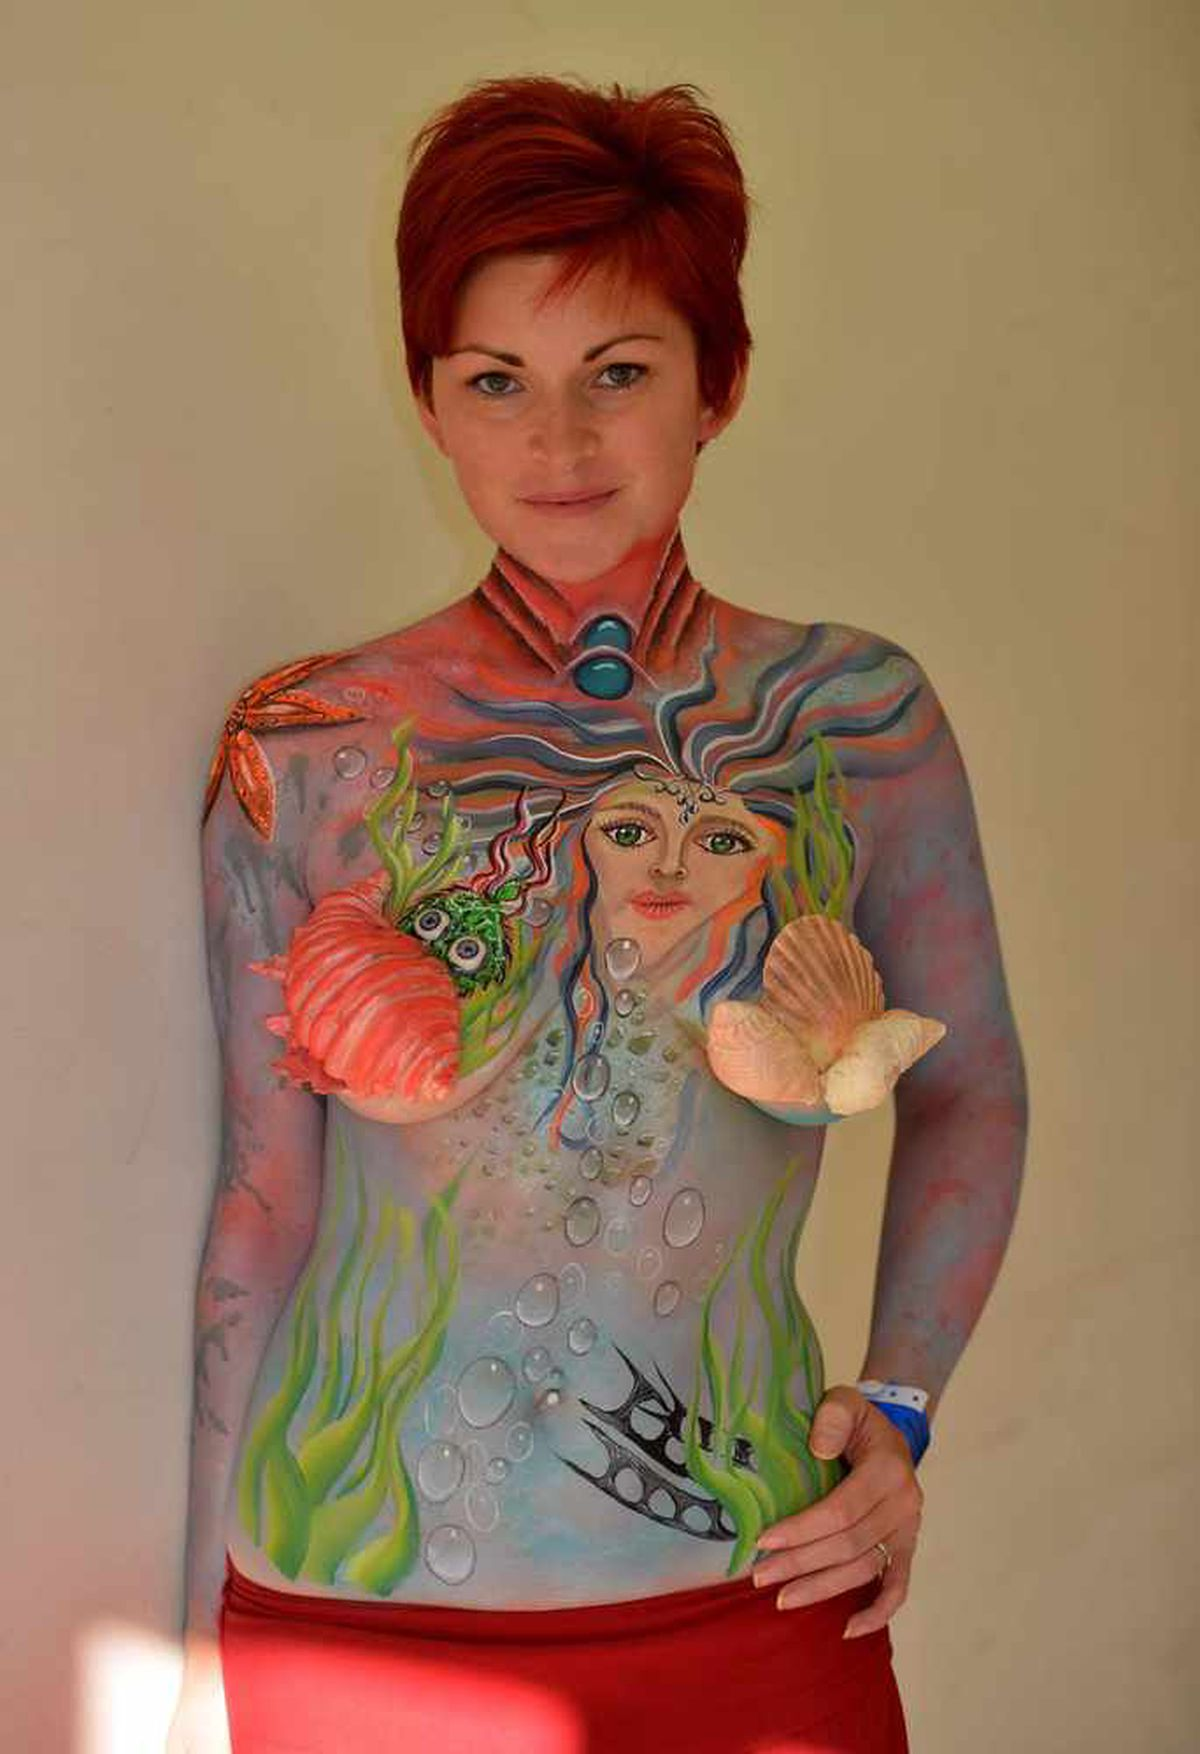 Model Laura Draycon from Cambridgeshire was painted by Yvonne Zonnenberg from Holland